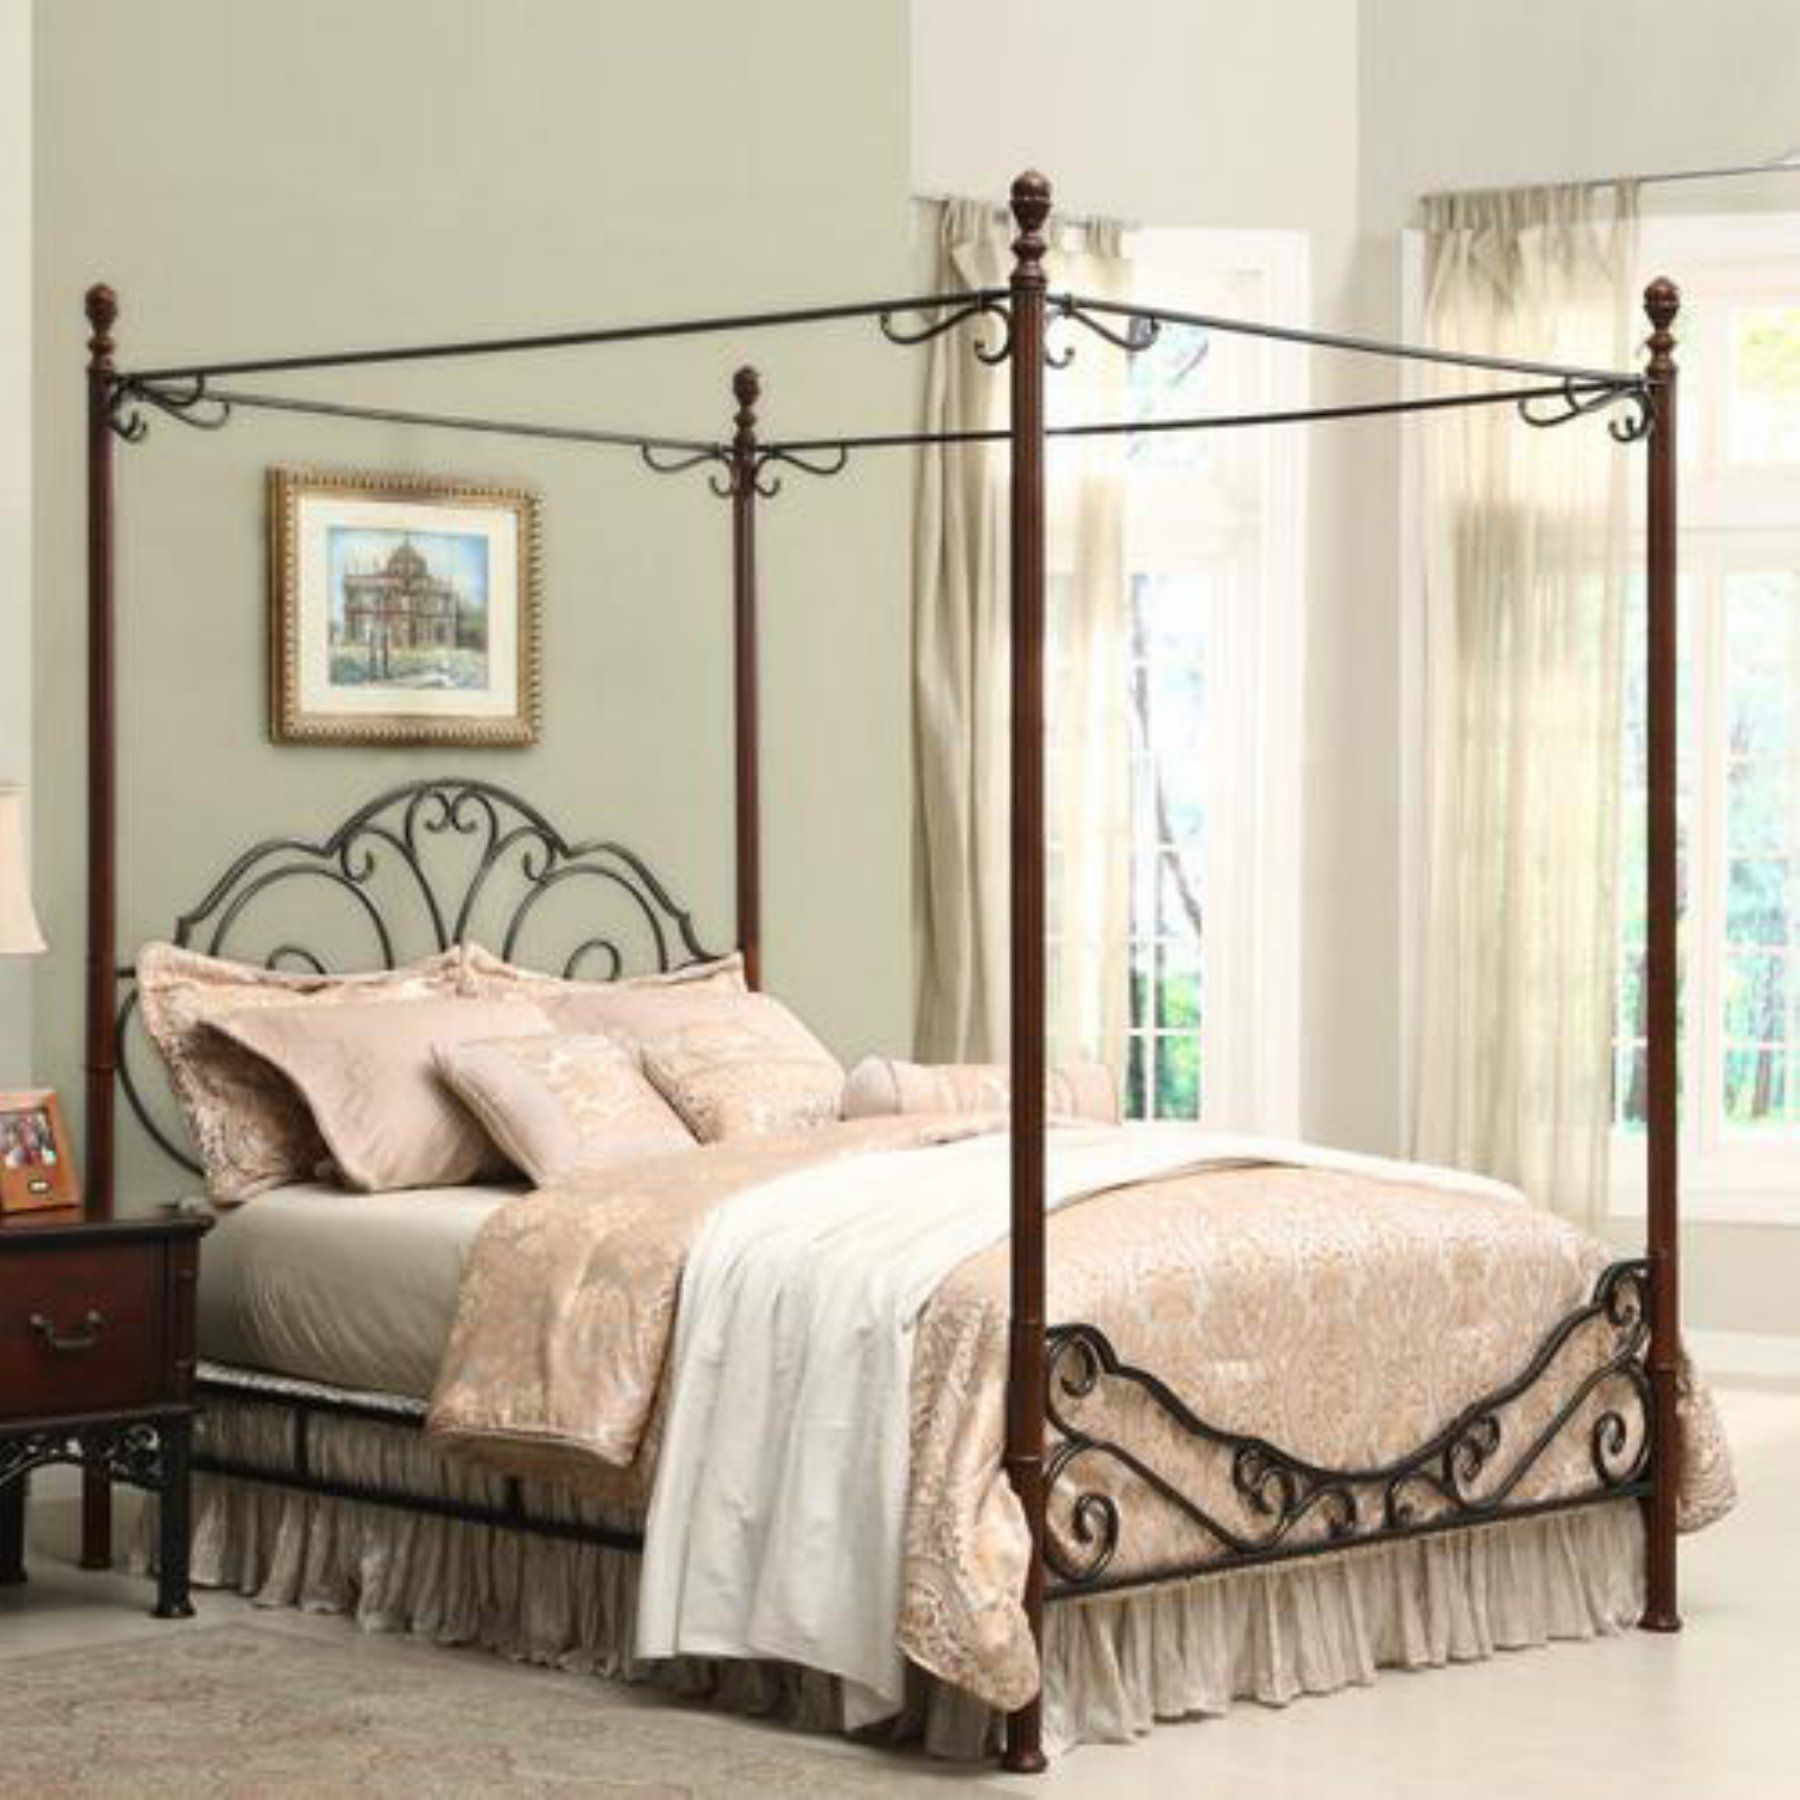 Weston Home Adison Graceful Scrolls Metal Canopy Bed  684513K 1[Bd]Cp